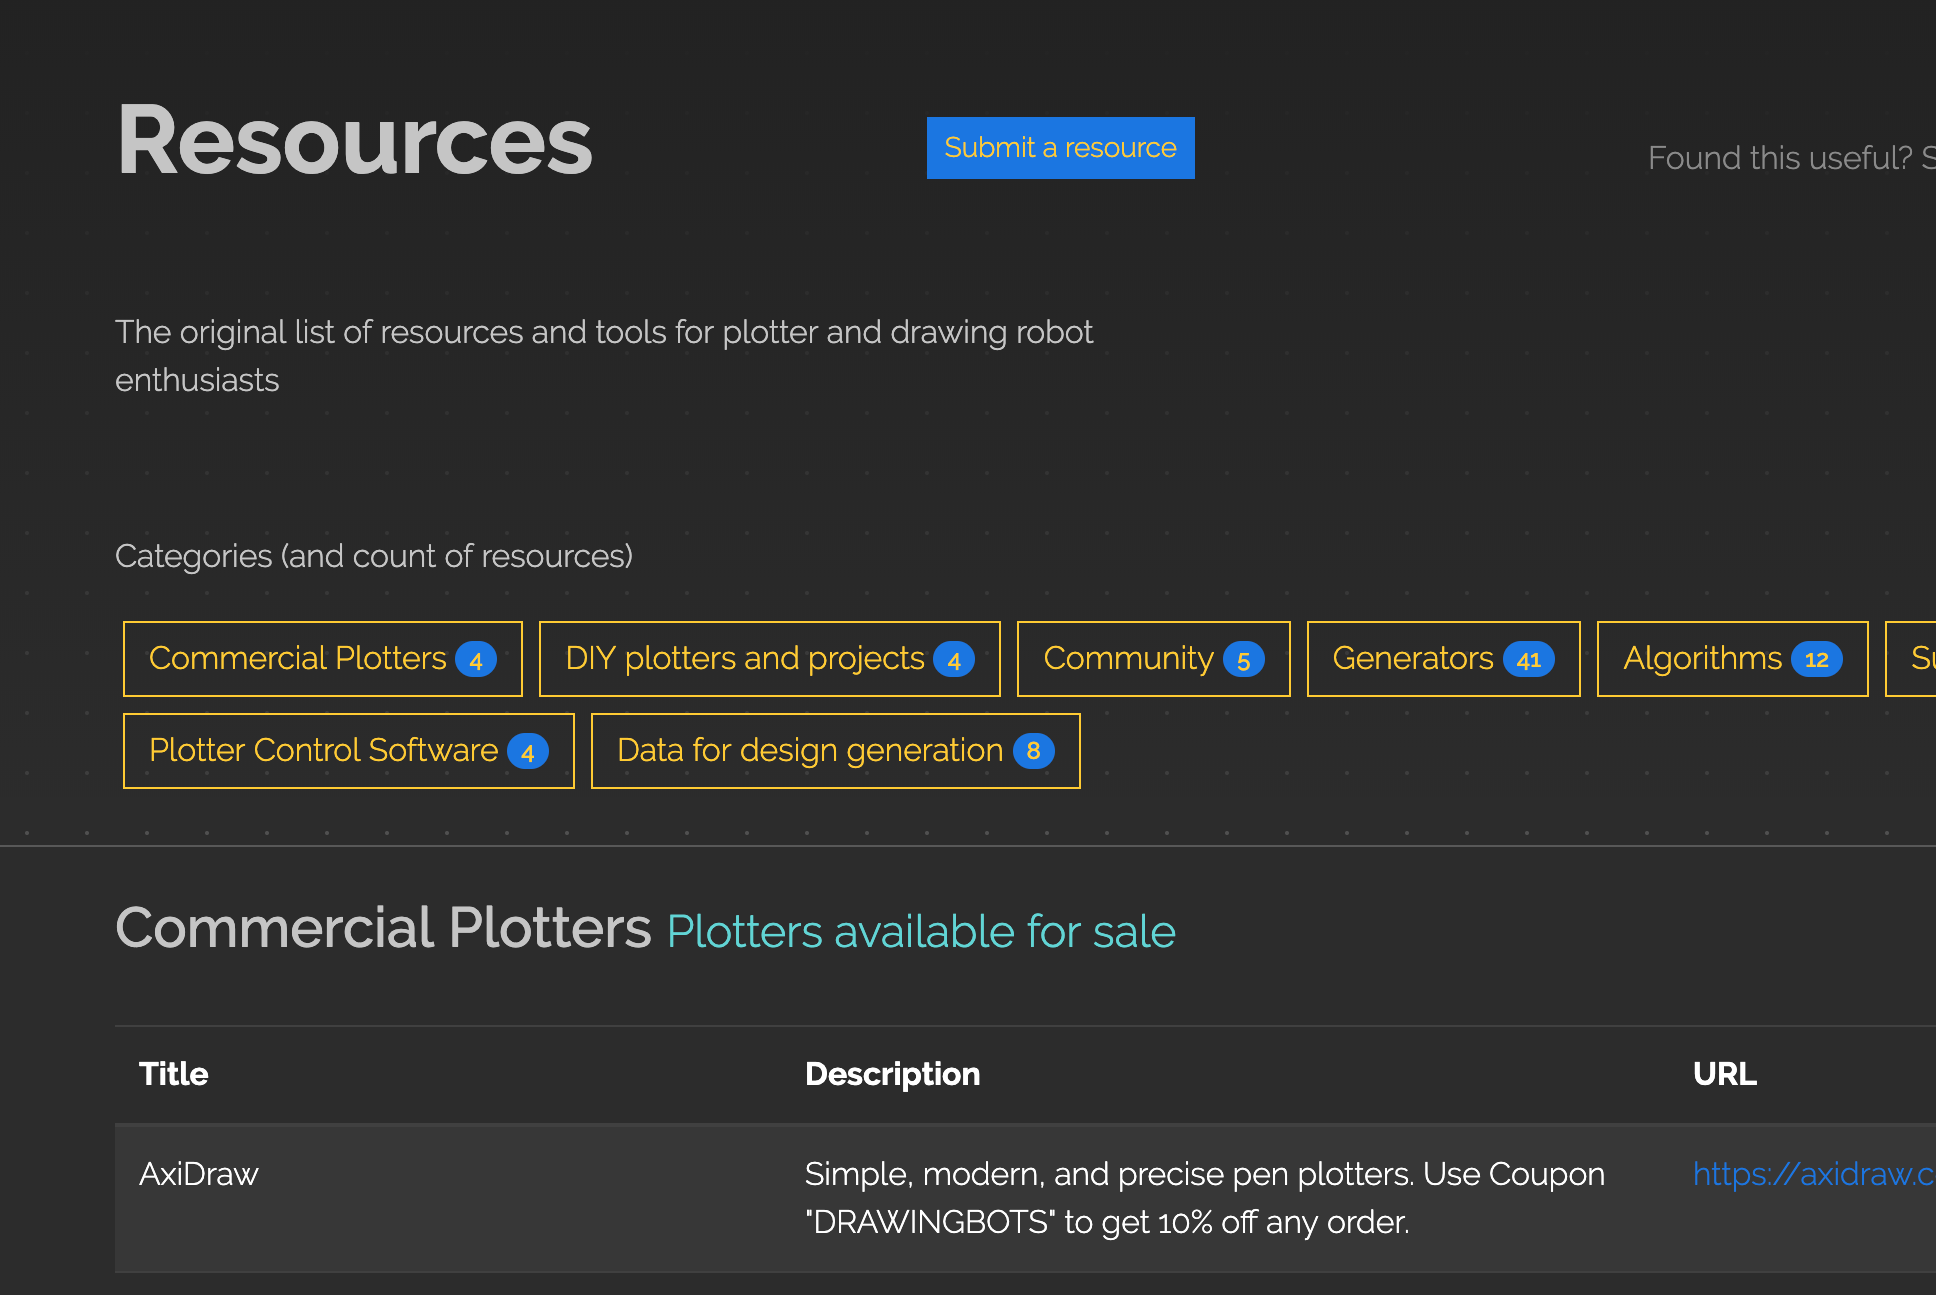 Drawingbots net List of Resources for Drawing Robot Enthusiasts